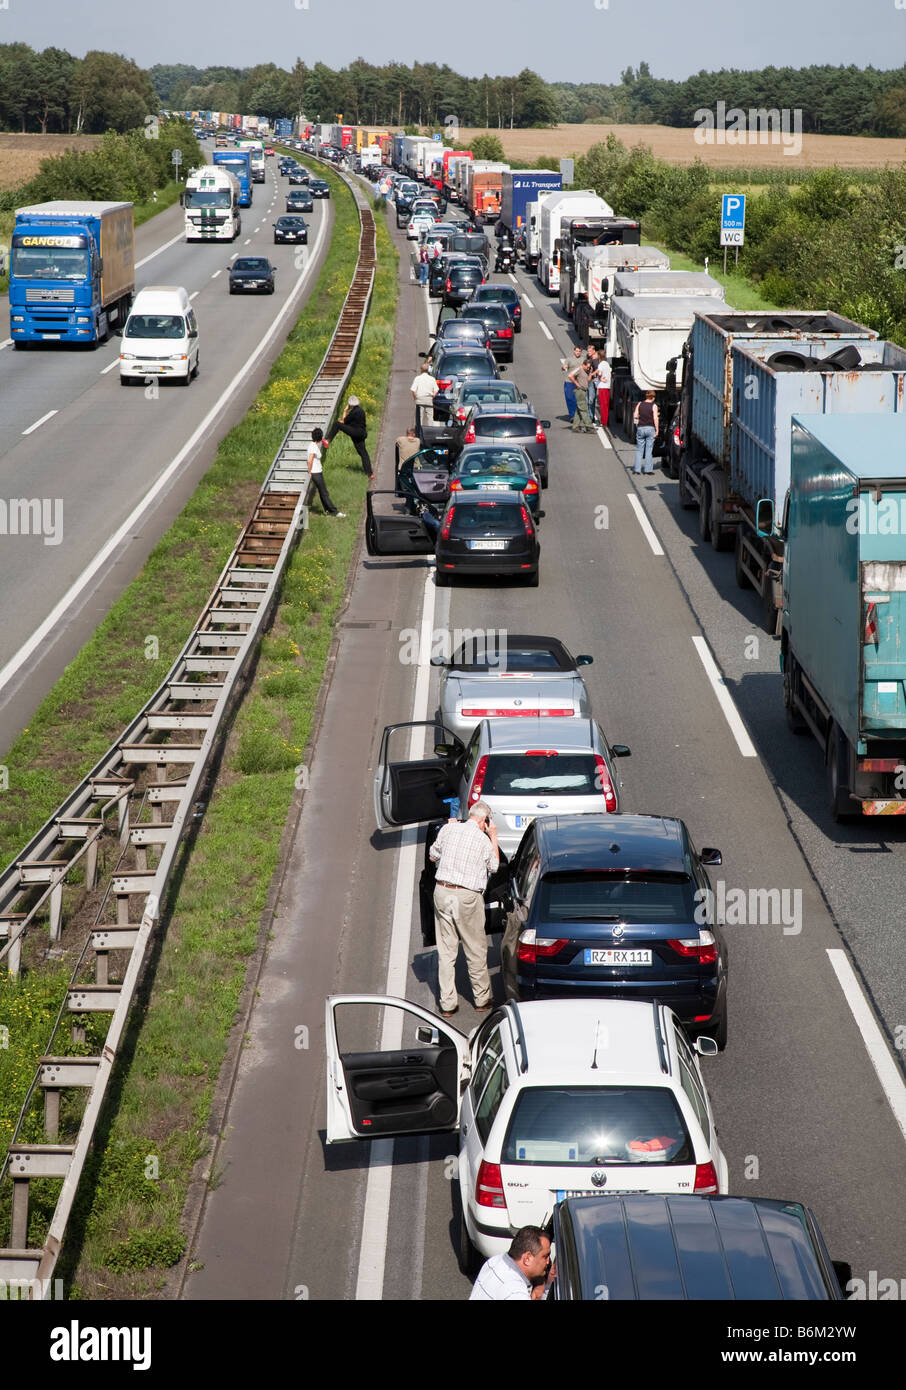 Traffic jam at dead stop on autobahn Germany Stock Photo